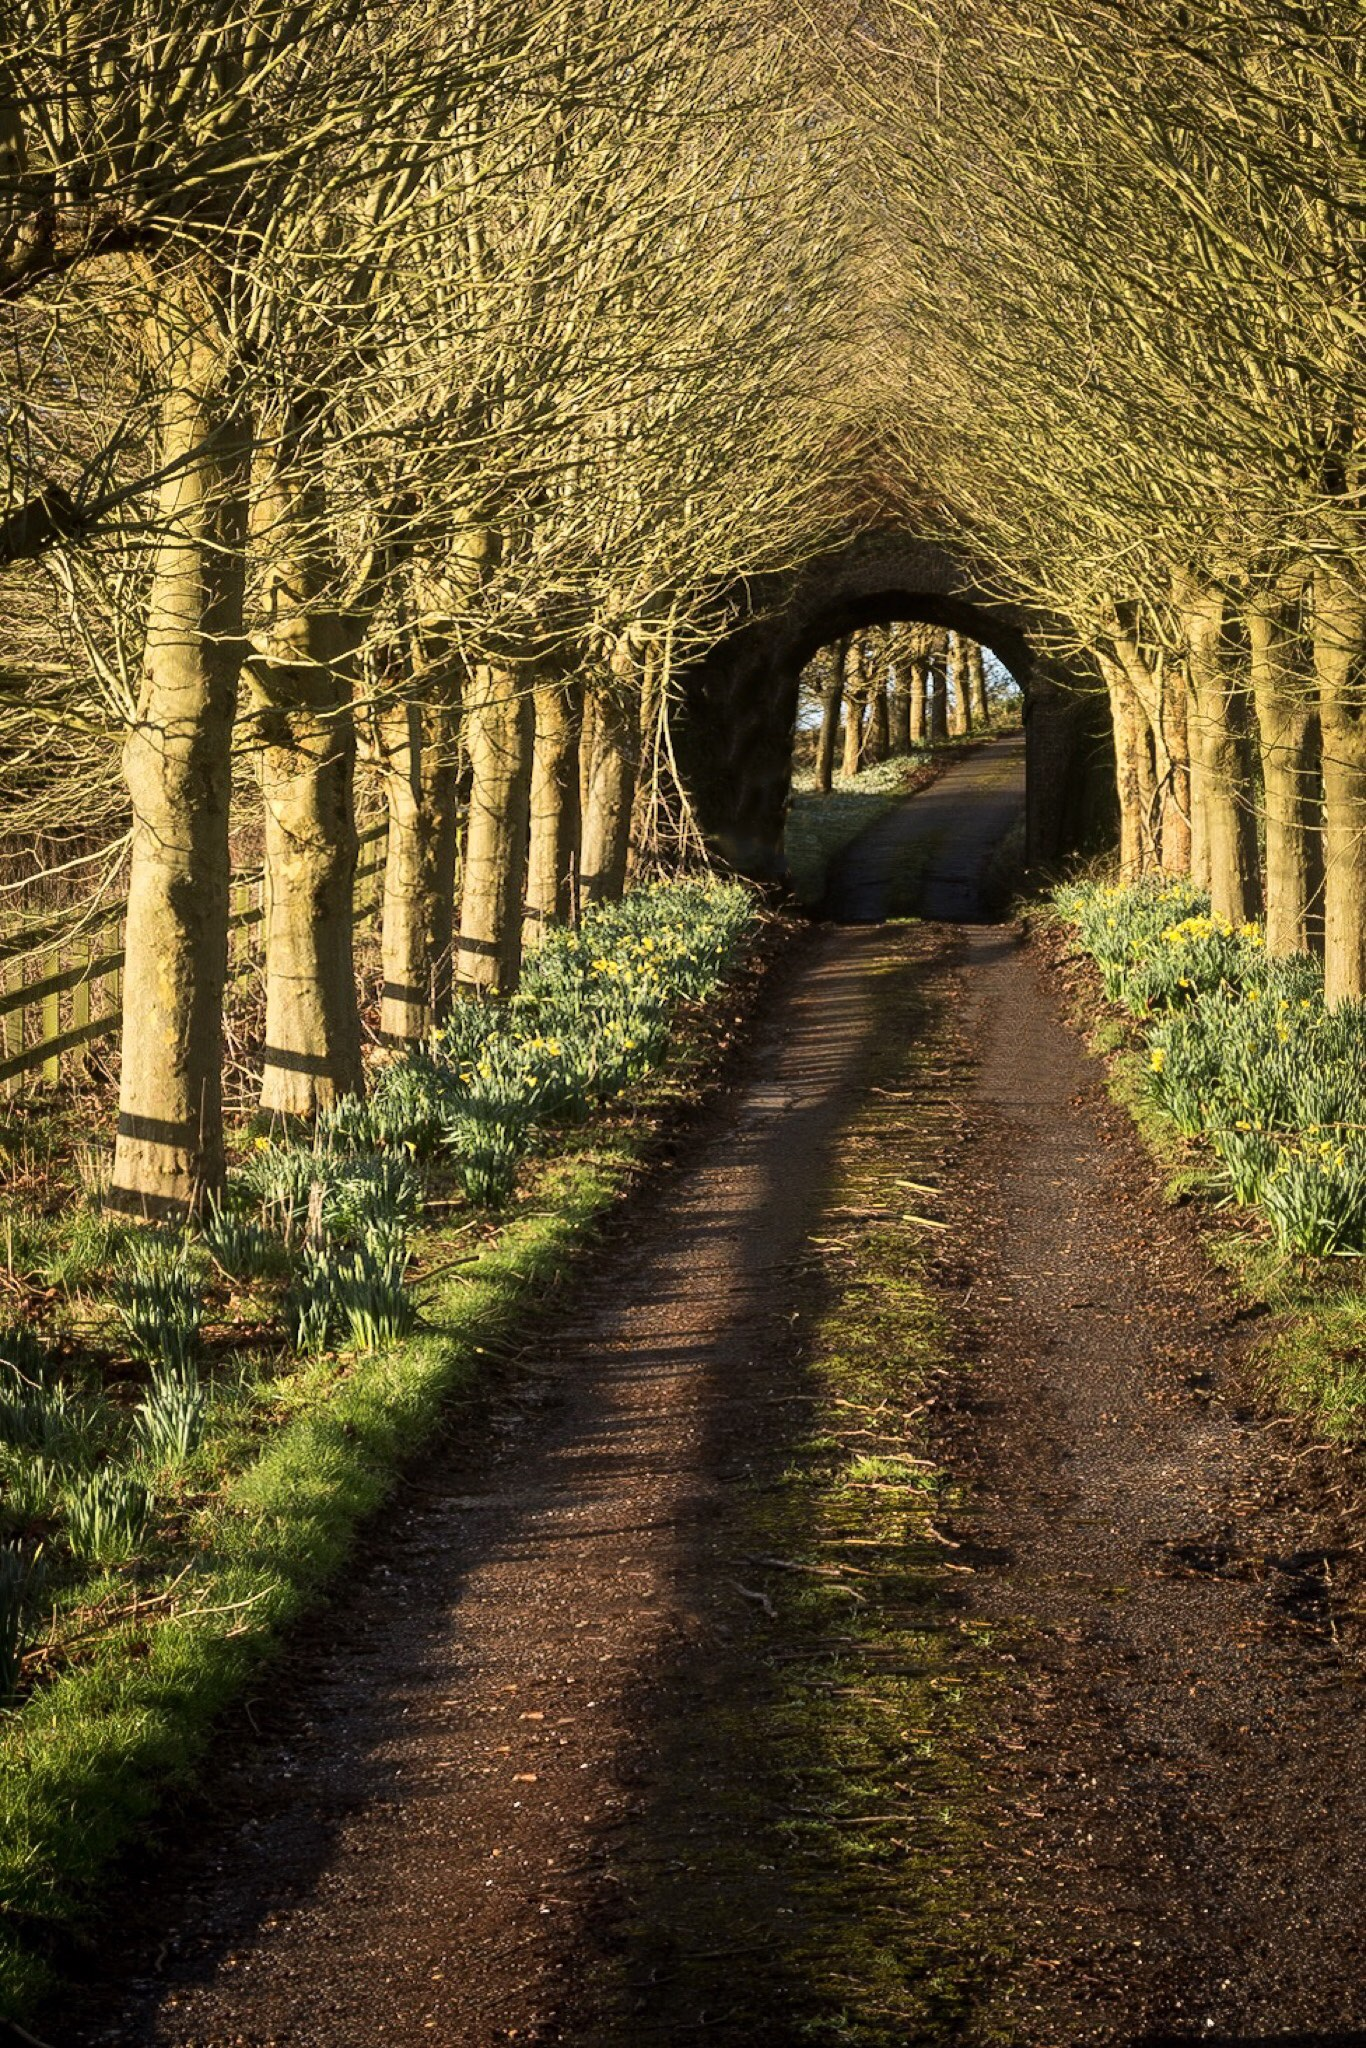 Road and tunnel by Rick McEvoy Dorset Photographer